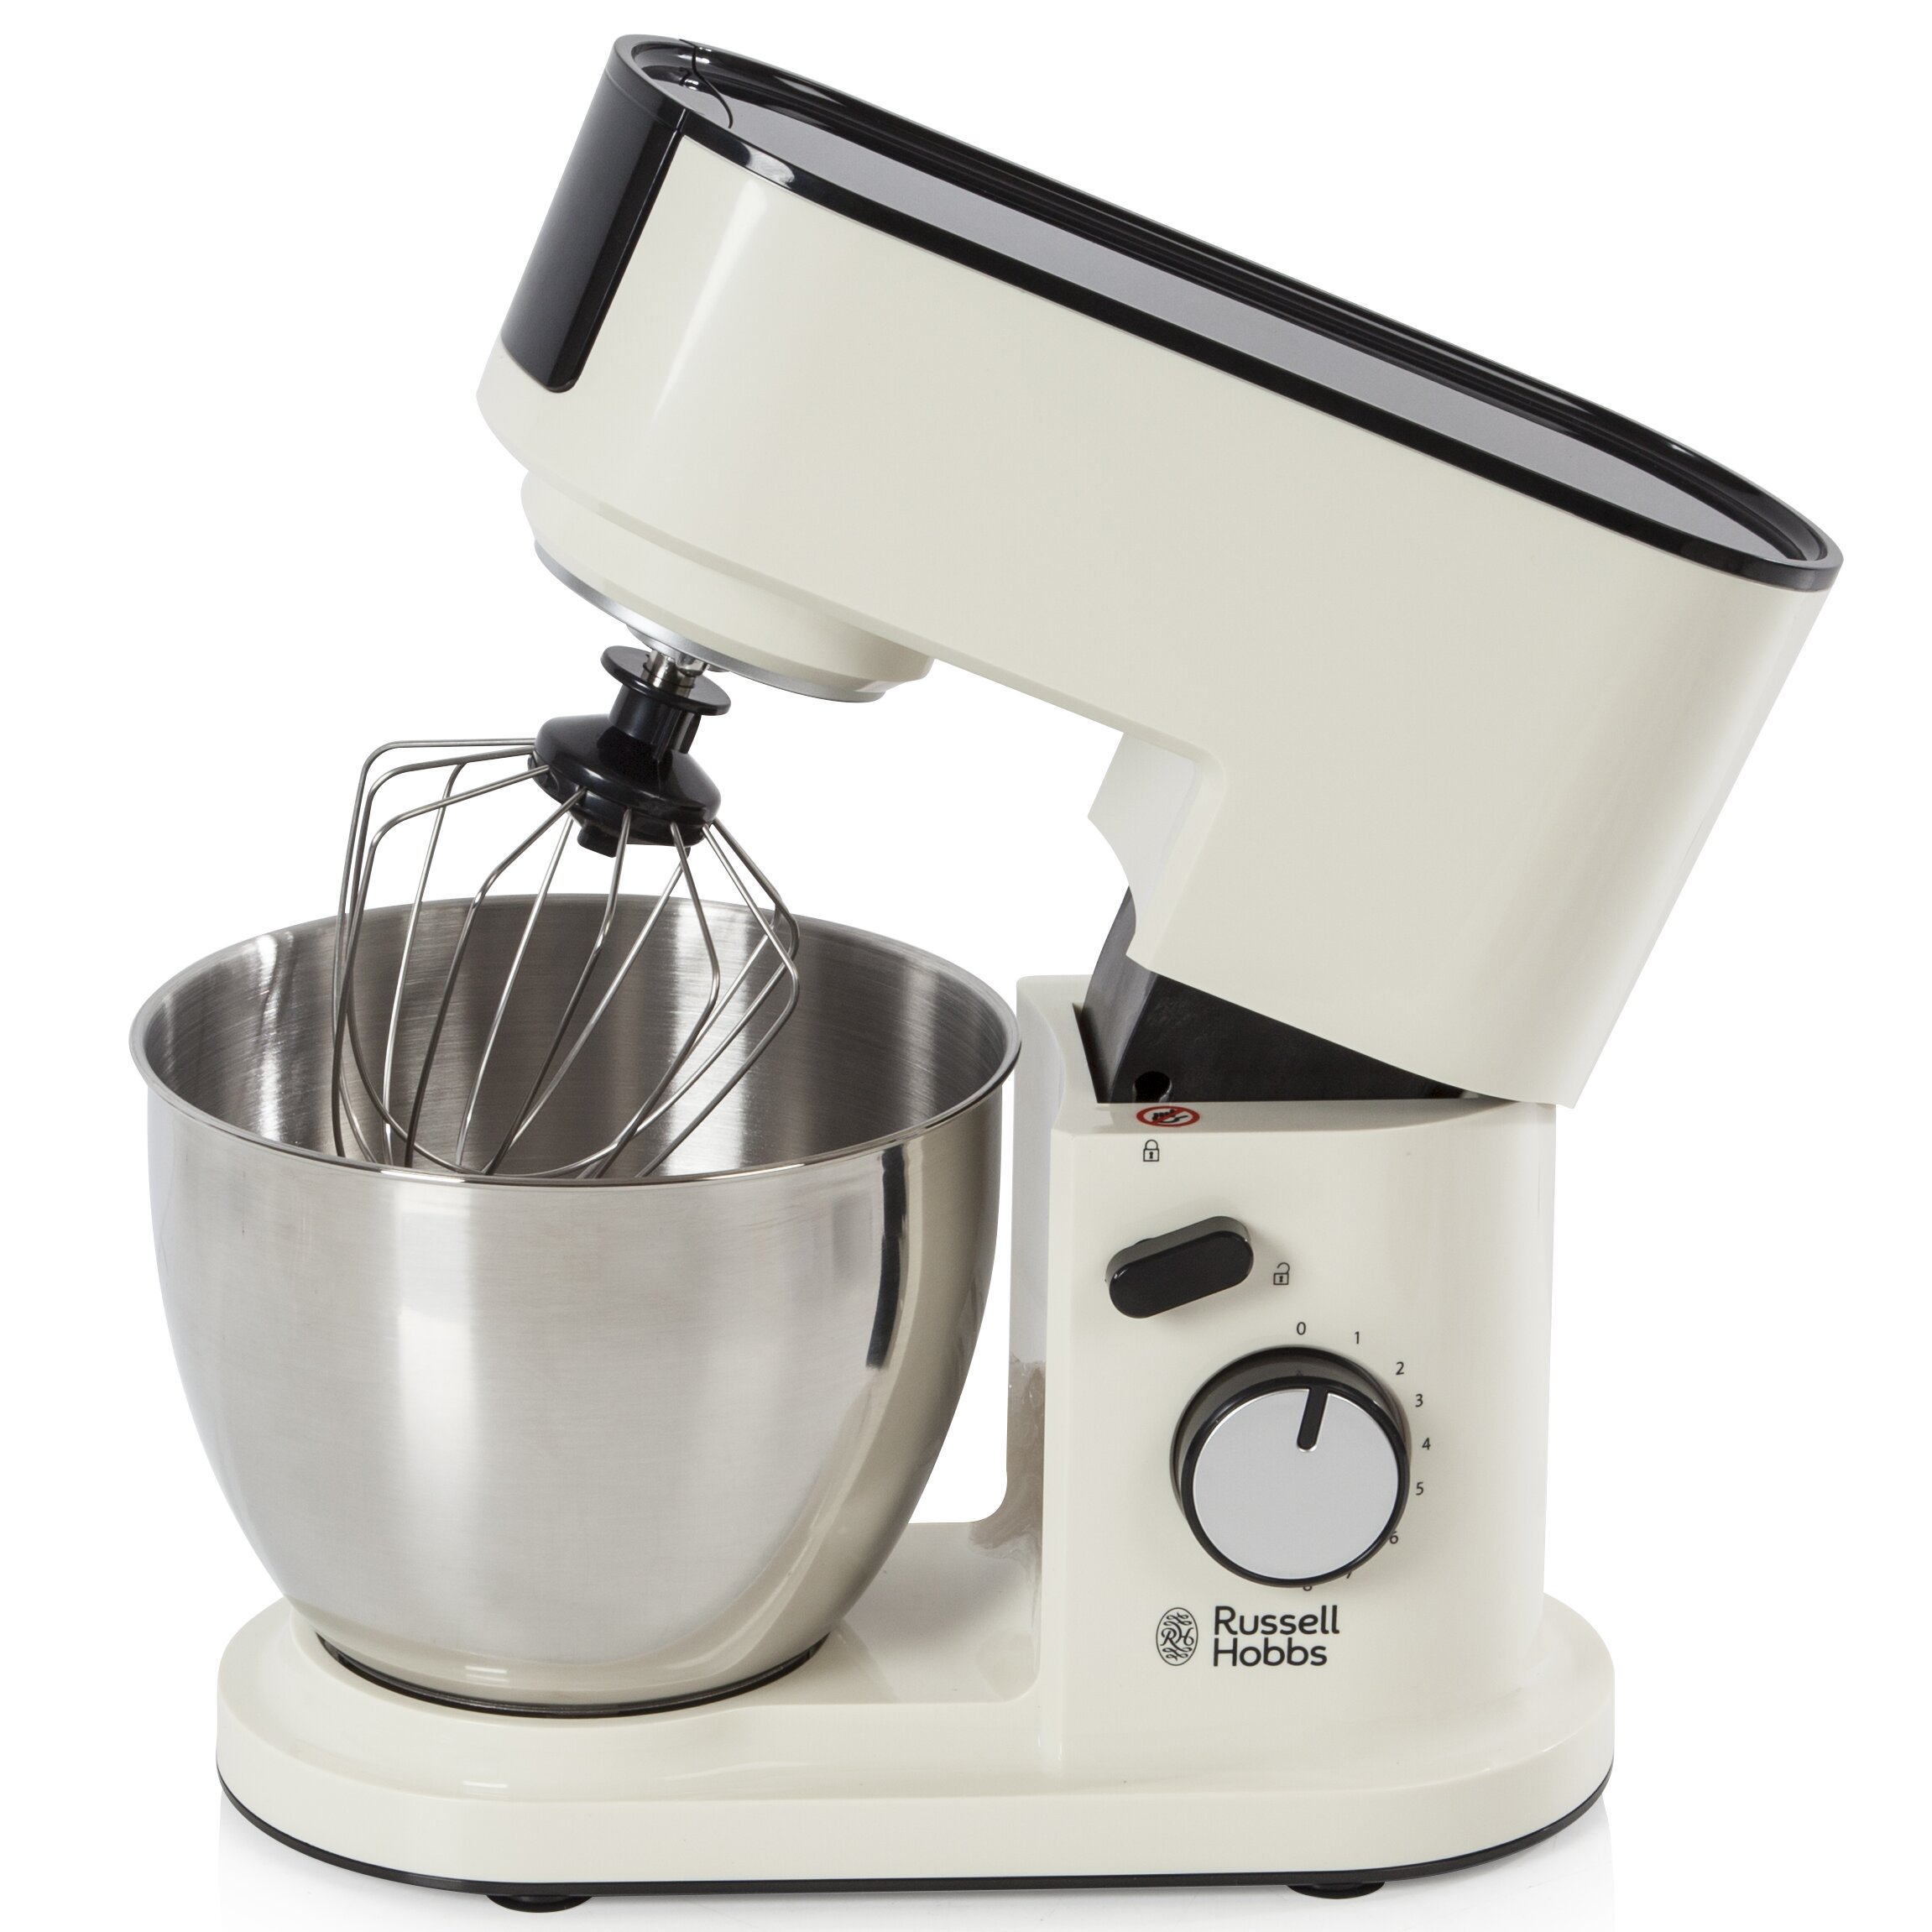 Russell hobbs 700w creations stand mixer wayfair uk for Creation stand